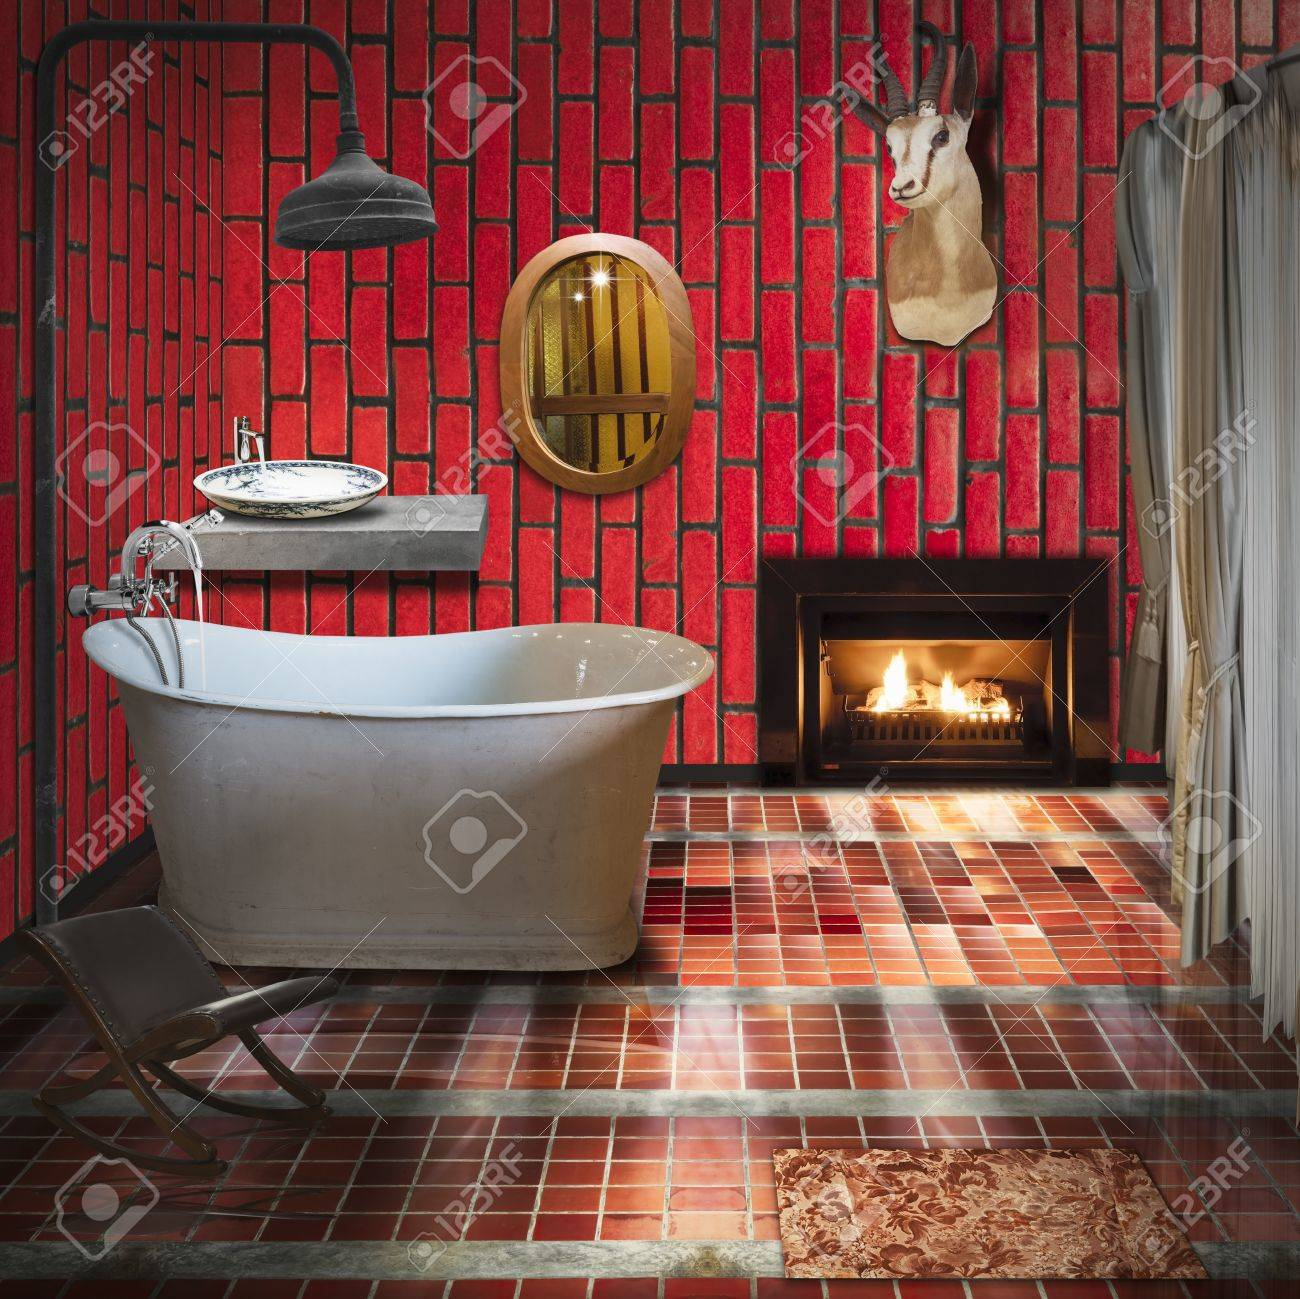 3d Bathroom Interior Design Fashion And Retro Style Stock Photo Picture And Royalty Free Image Image 11830662